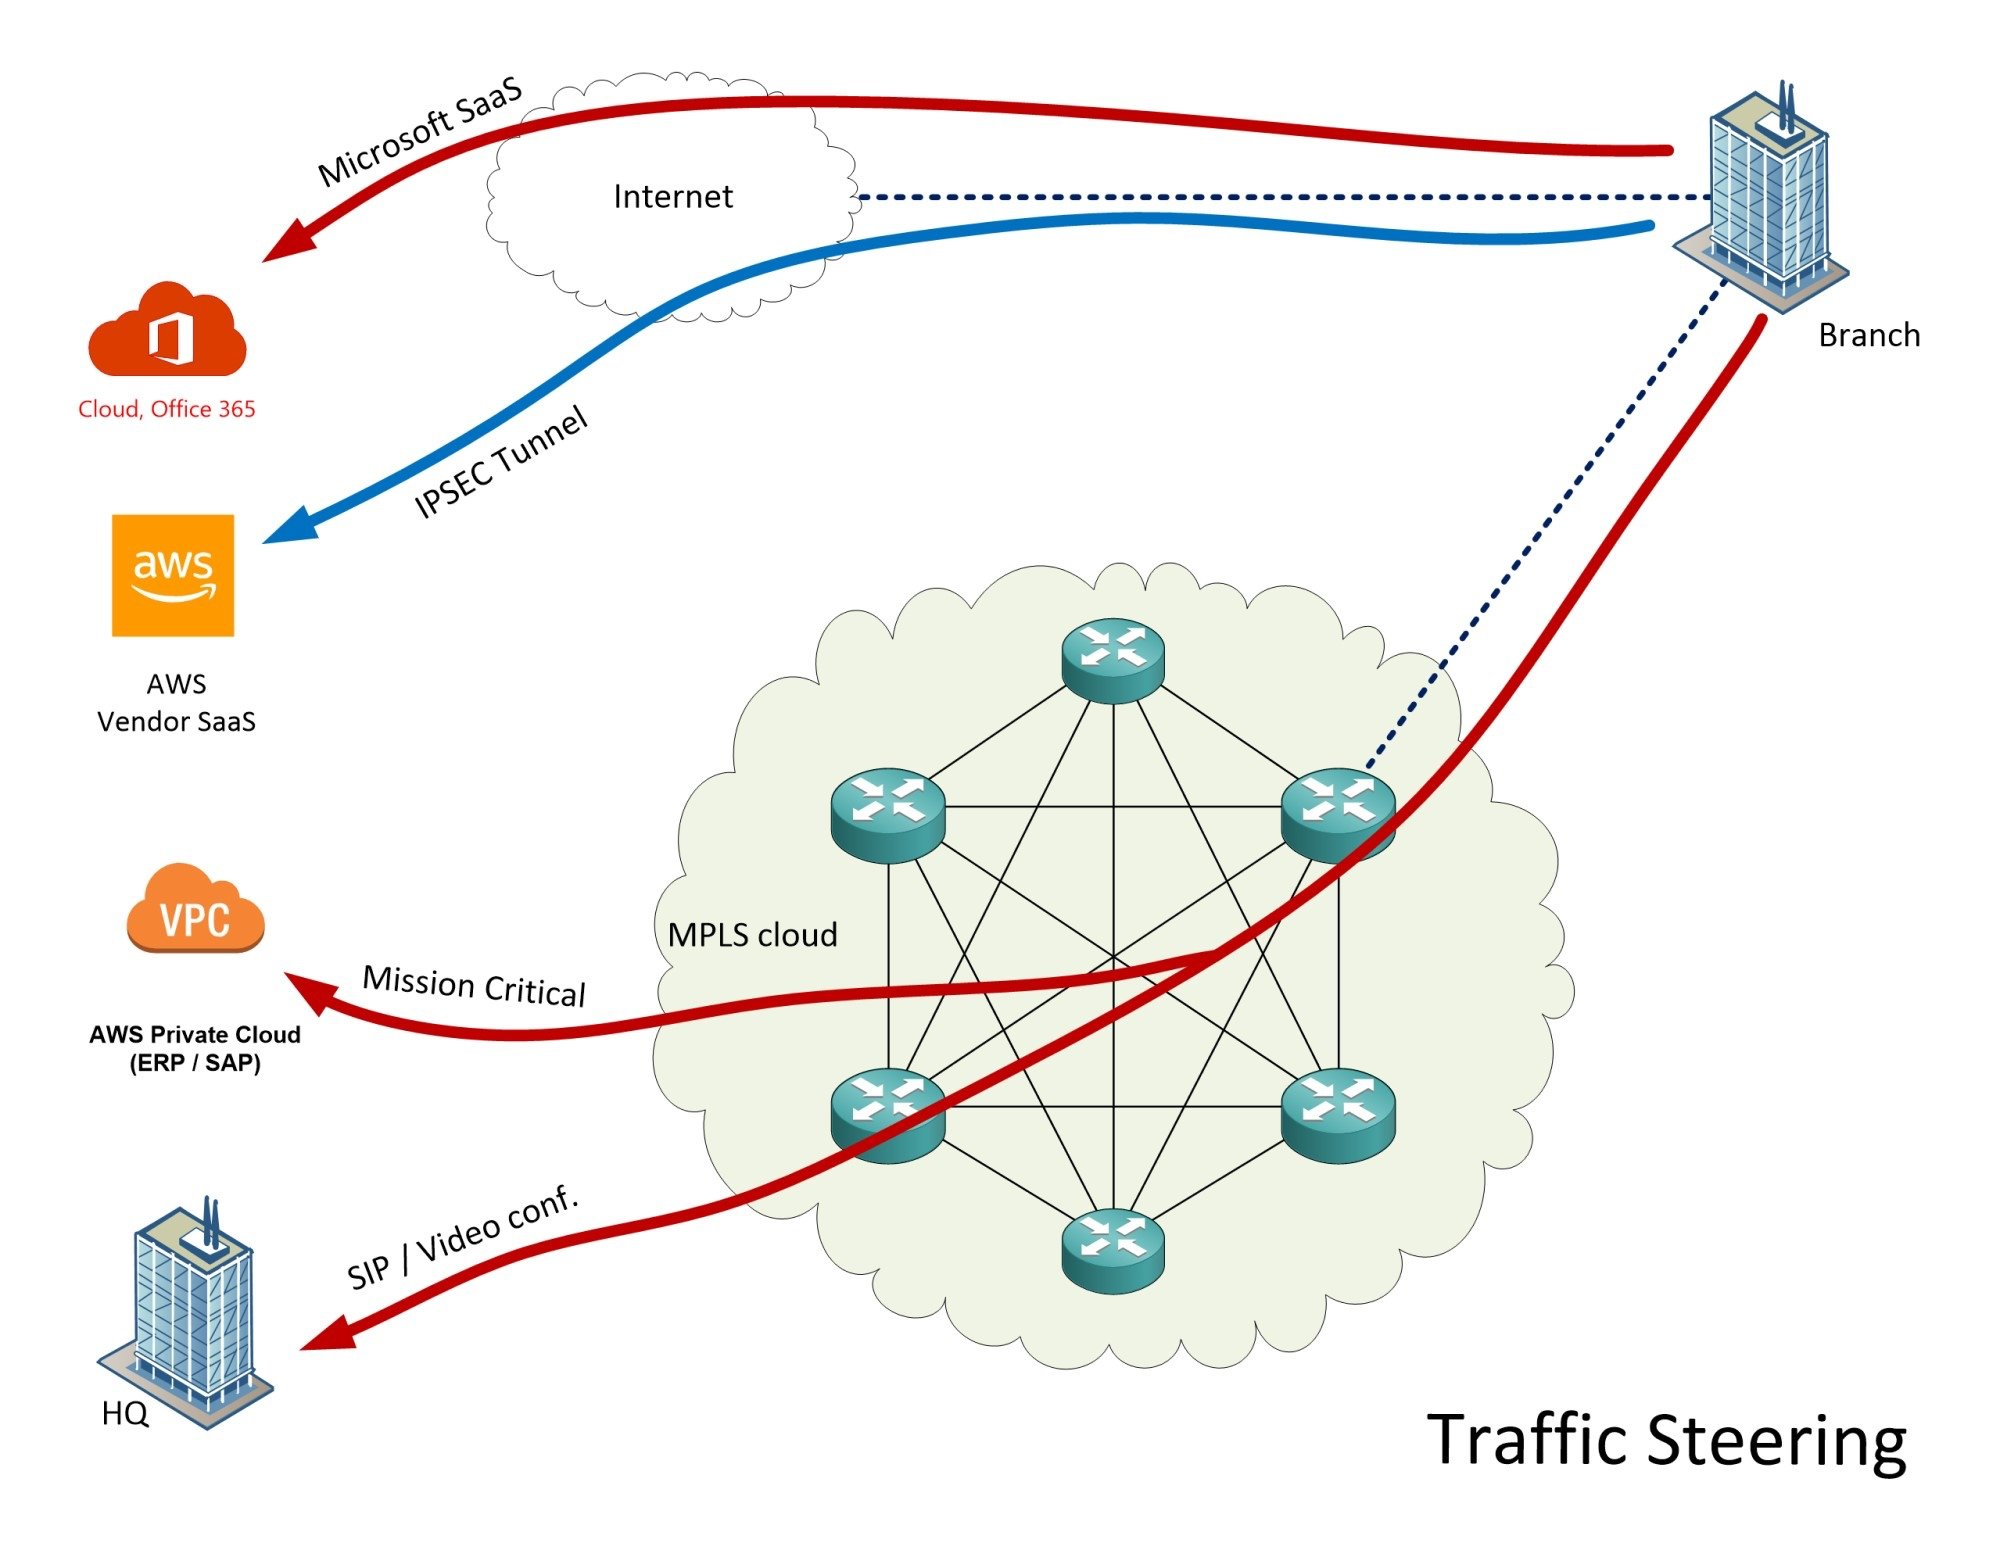 SD WAN requirements and traffic steering